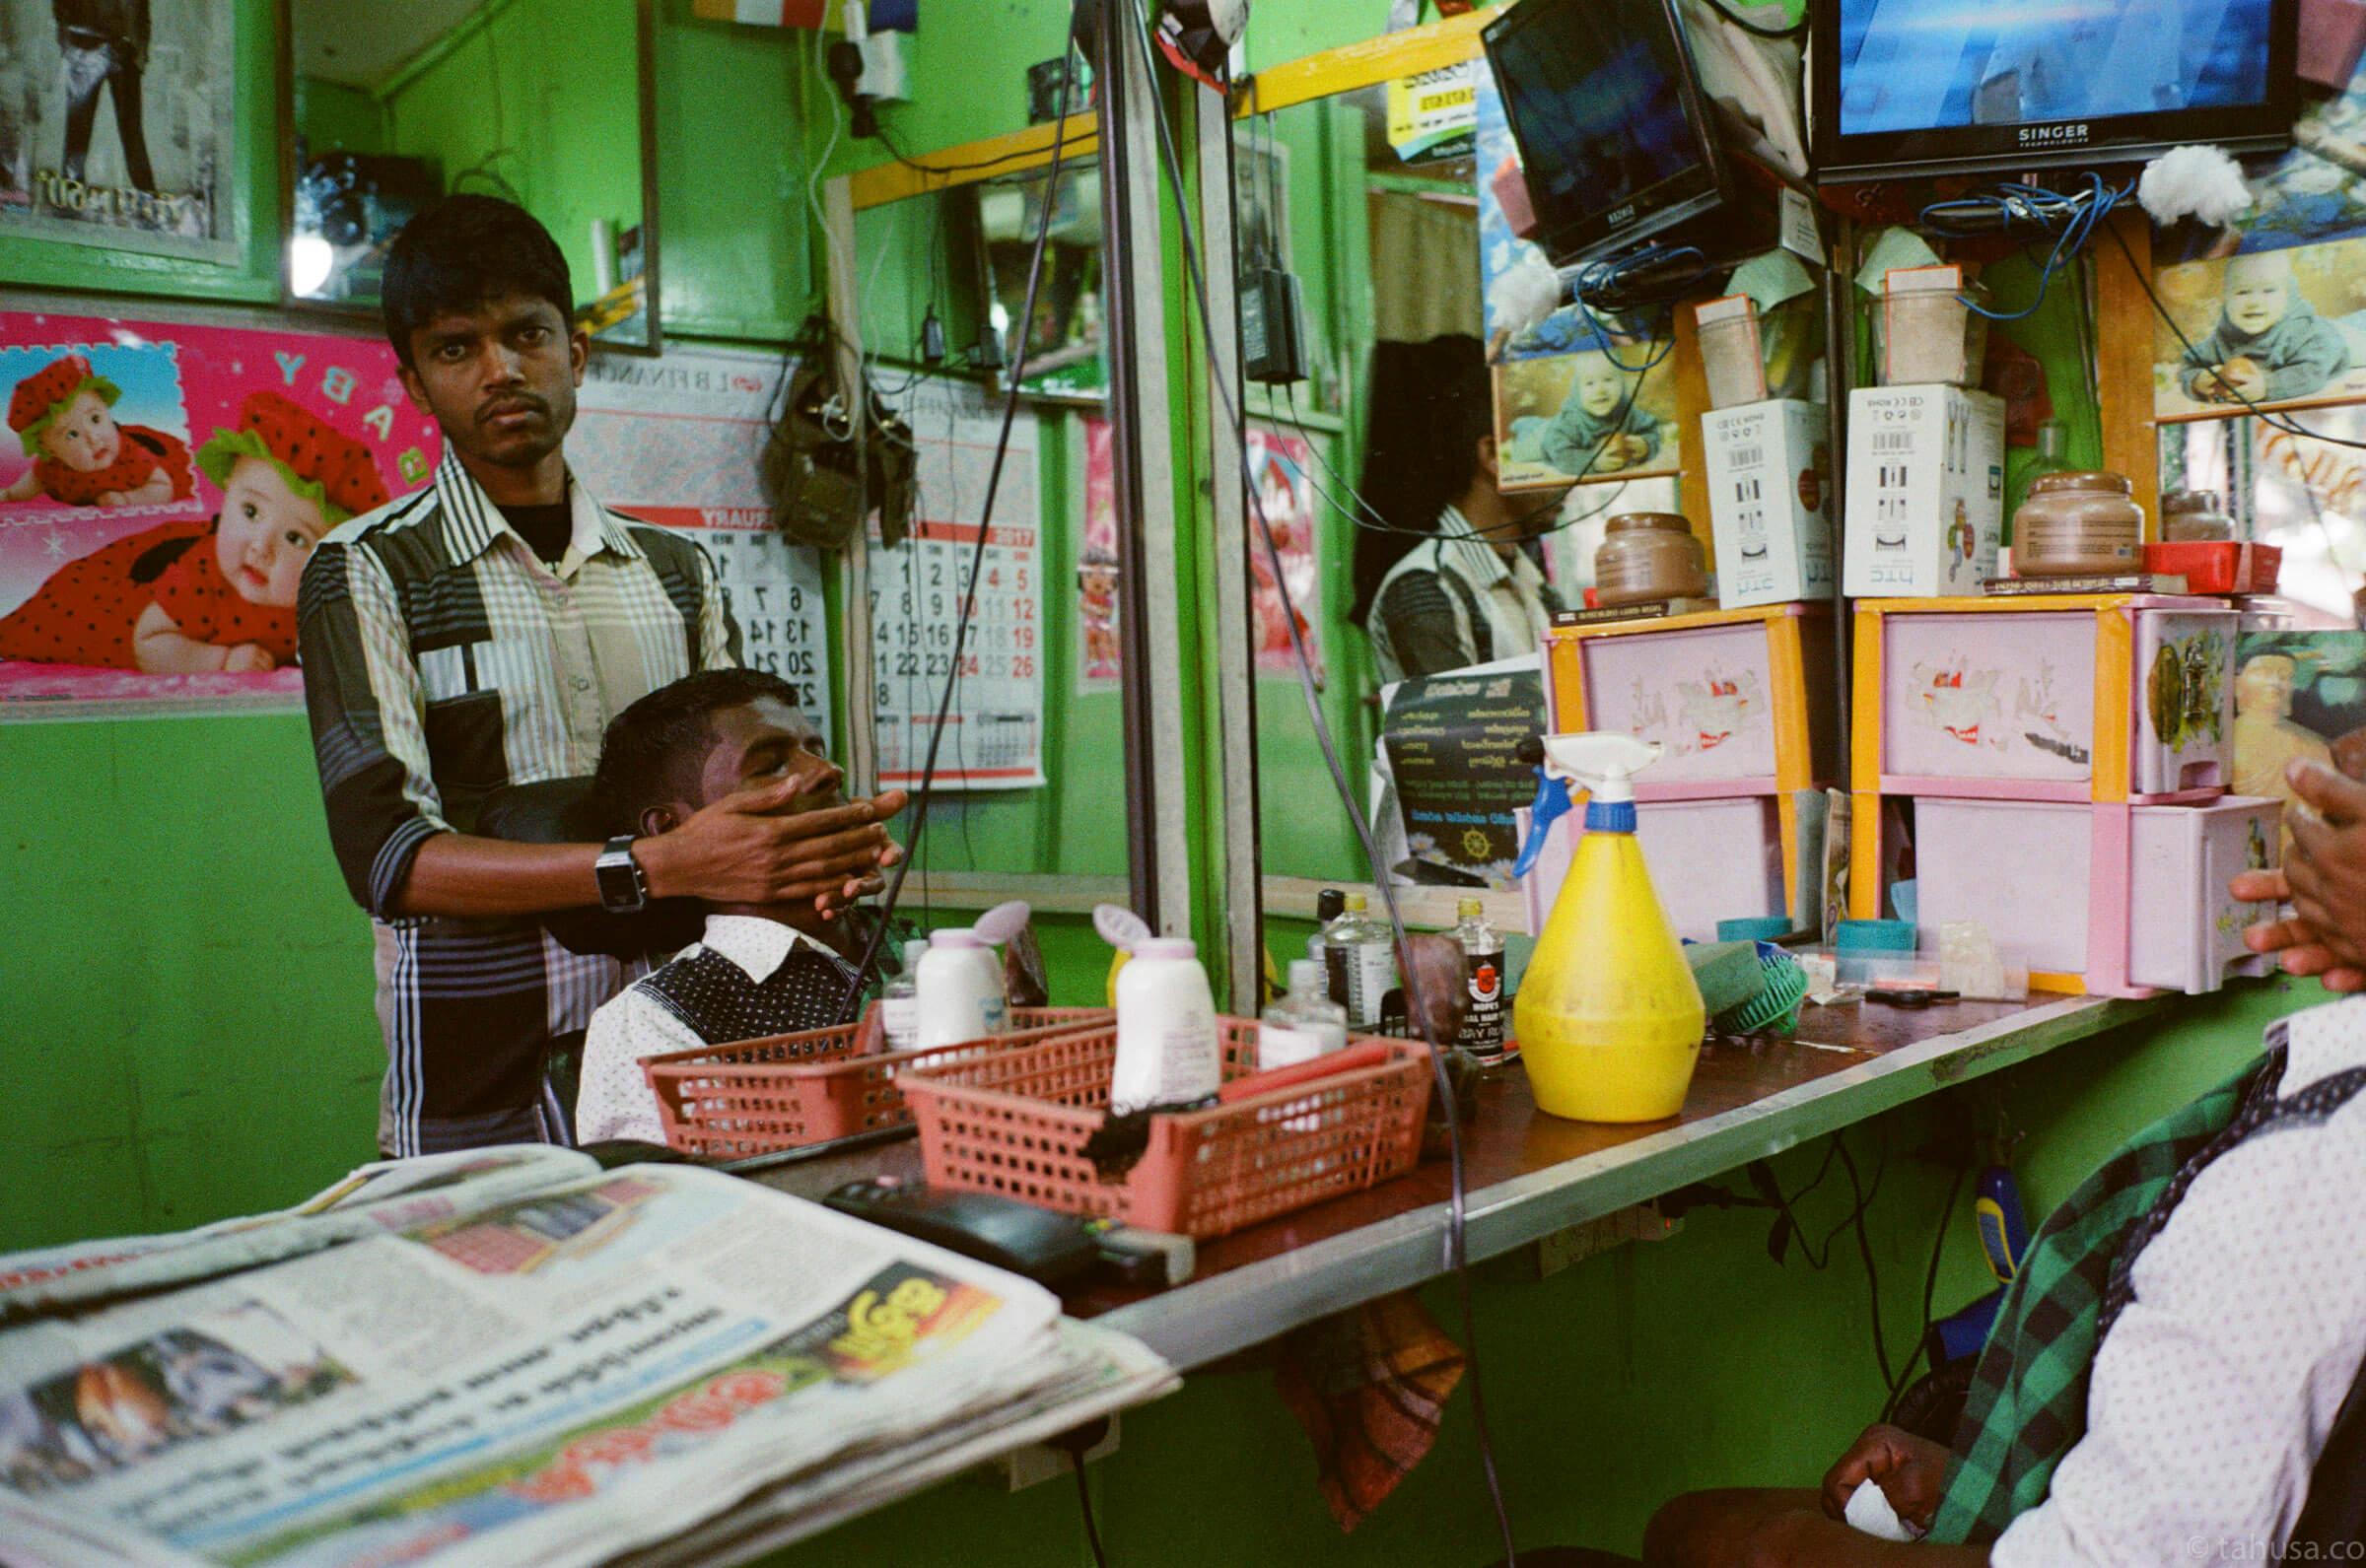 almost-done-with-his-haircut-in-salon-in-Nuwara-Eliya-Sri-Lanka-Travel-documentary-train-ride-using-leica-m2-Kodak-Super-Gold-400-iso400-Jap-jp-japanese-version-Summilux-35mm-f1.4-infinity-lock-pre-asph